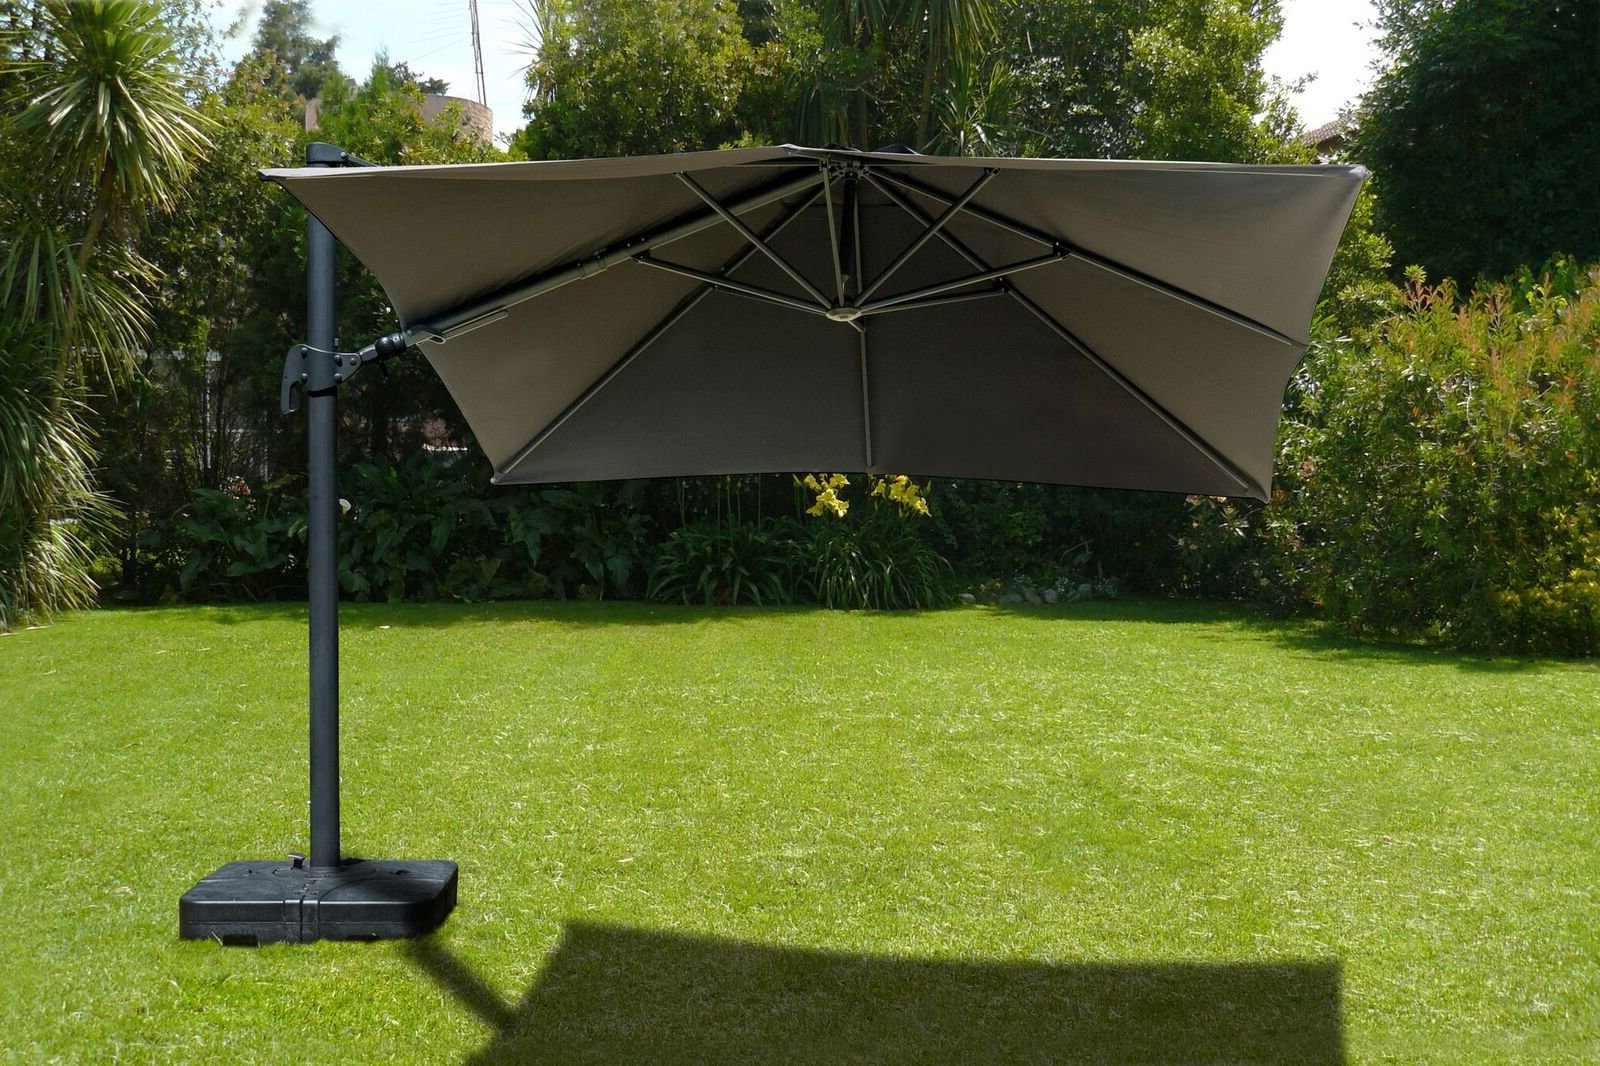 Widely Used Gemmenne 10' Square Cantilever Umbrella Inside Bondi Square Cantilever Umbrellas (View 16 of 20)